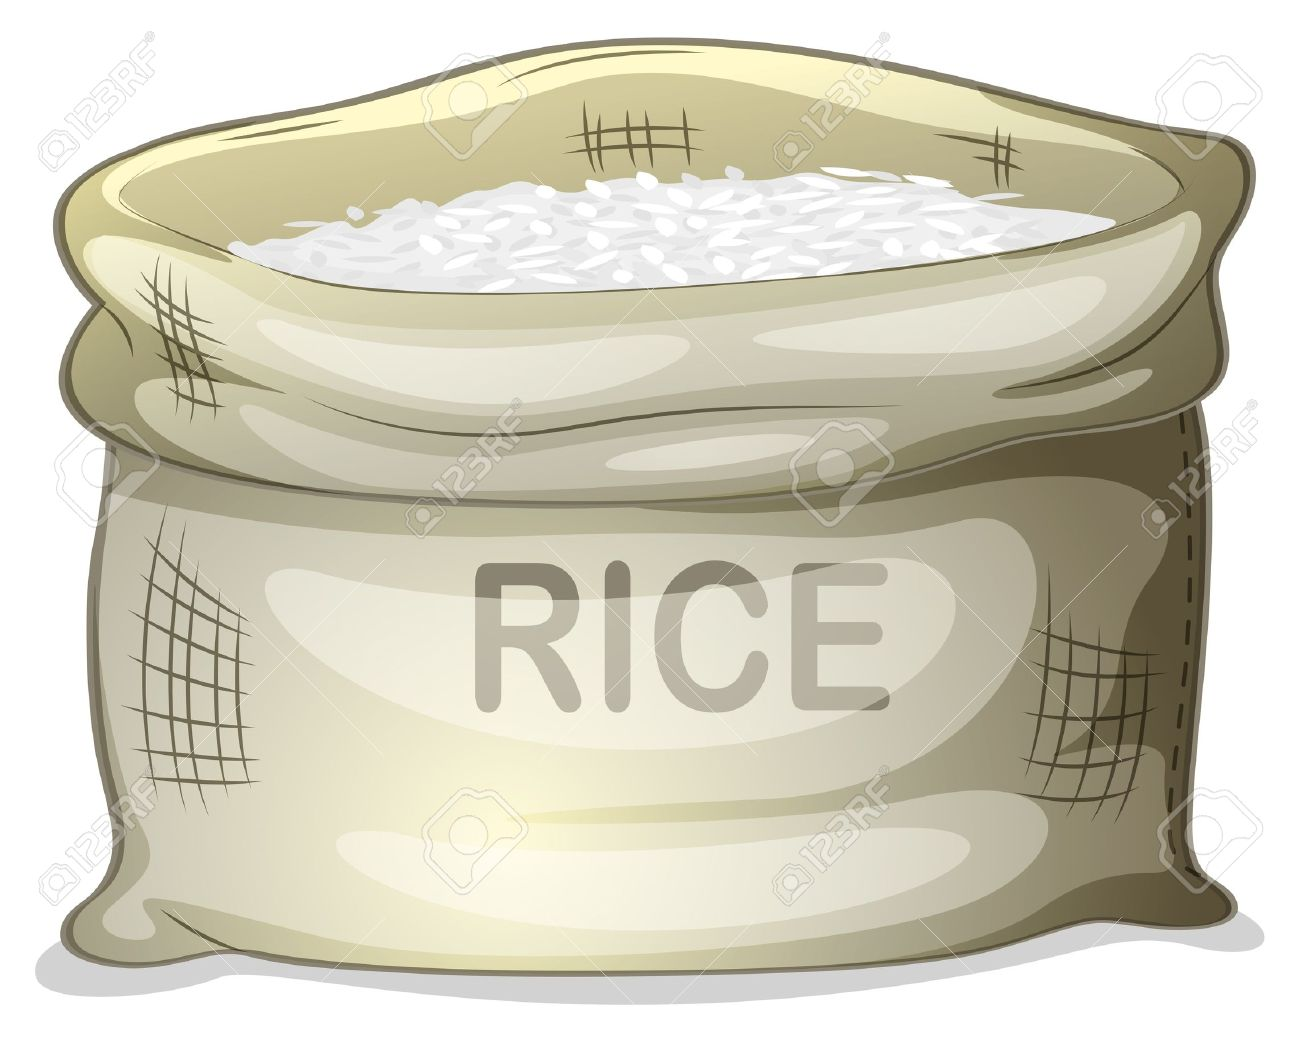 18133994-Illustration-of-a-sack-of-white-rice-on-a-white-background-Stock-Vector.jpg